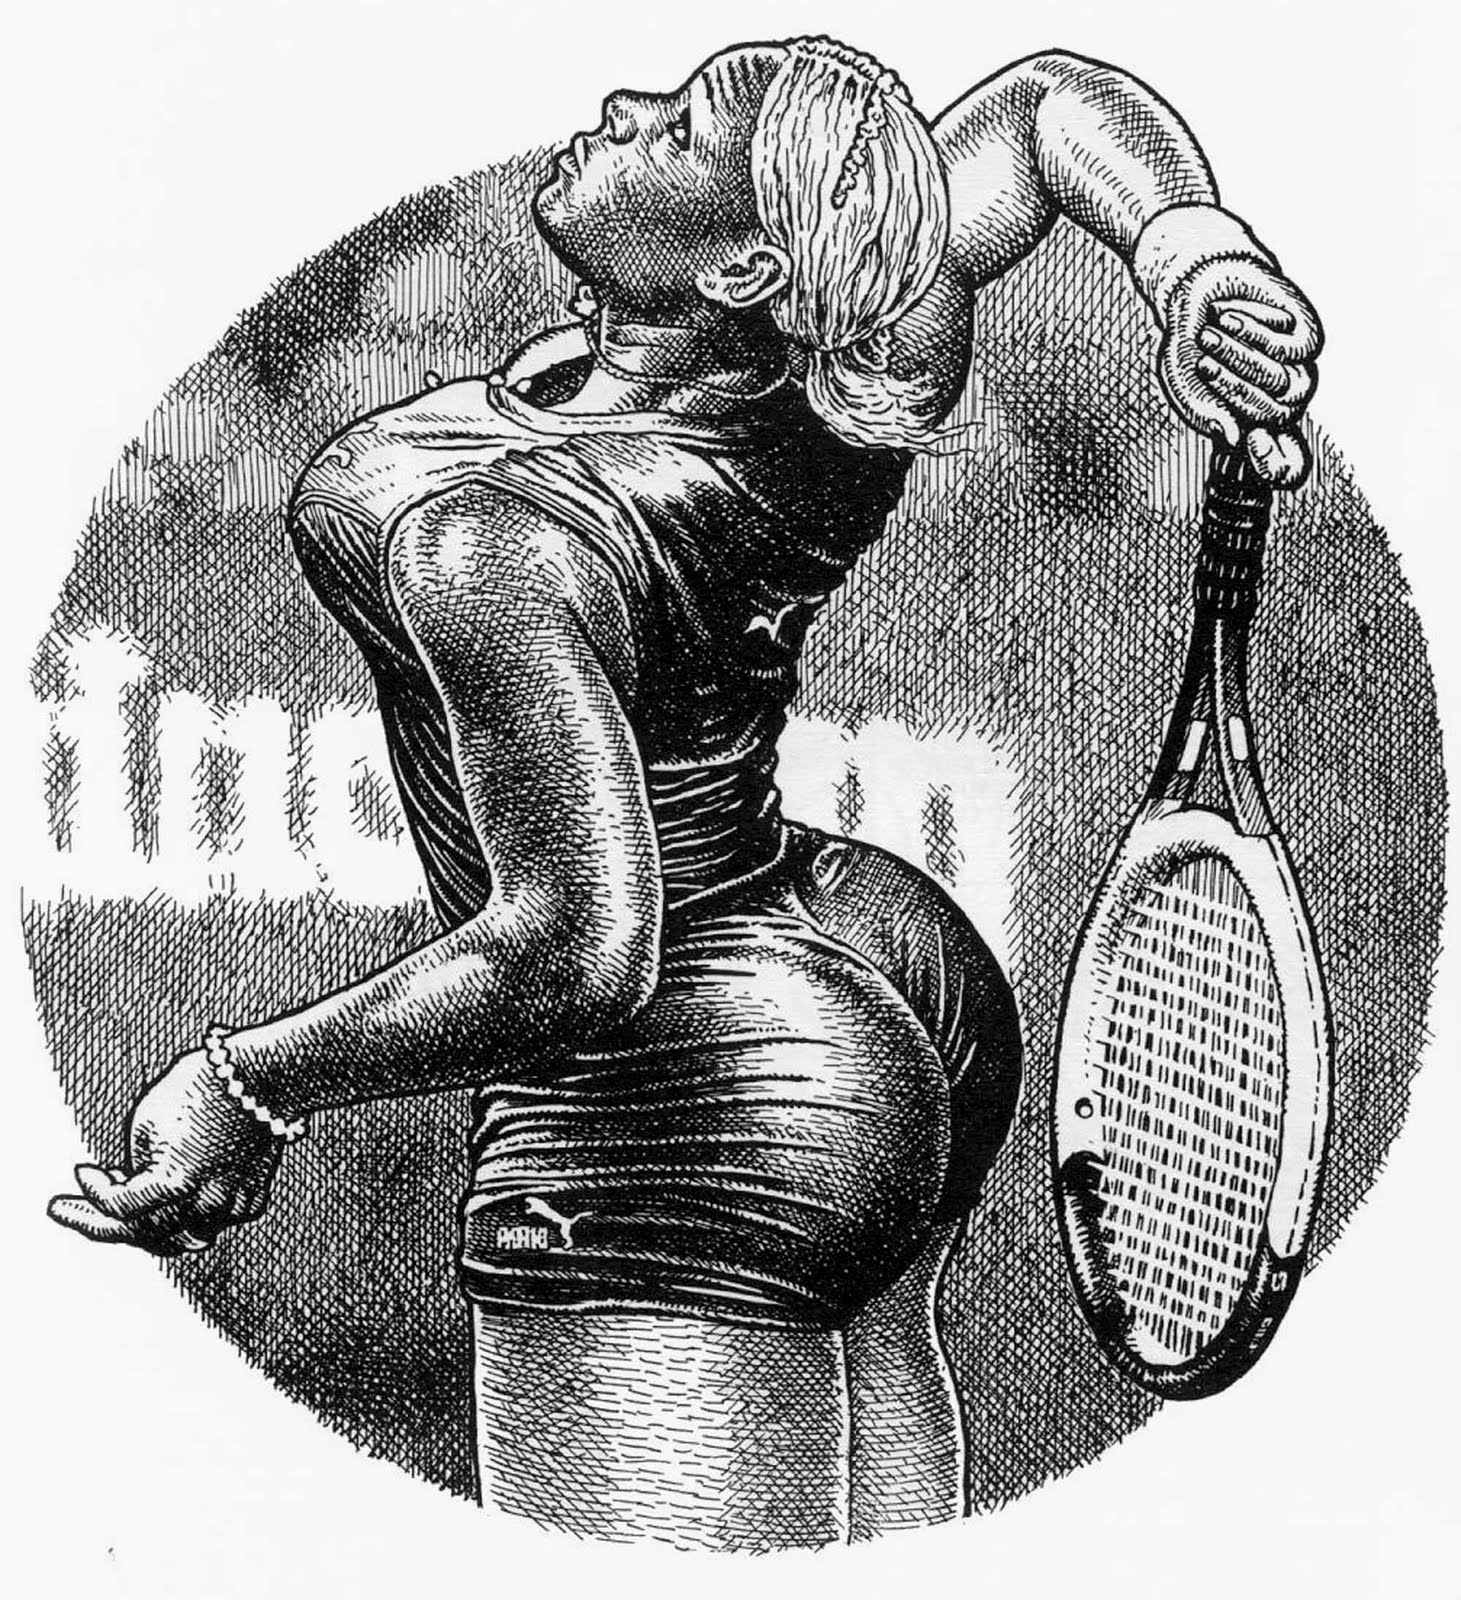 robert_crumb_tennis_girl_2006